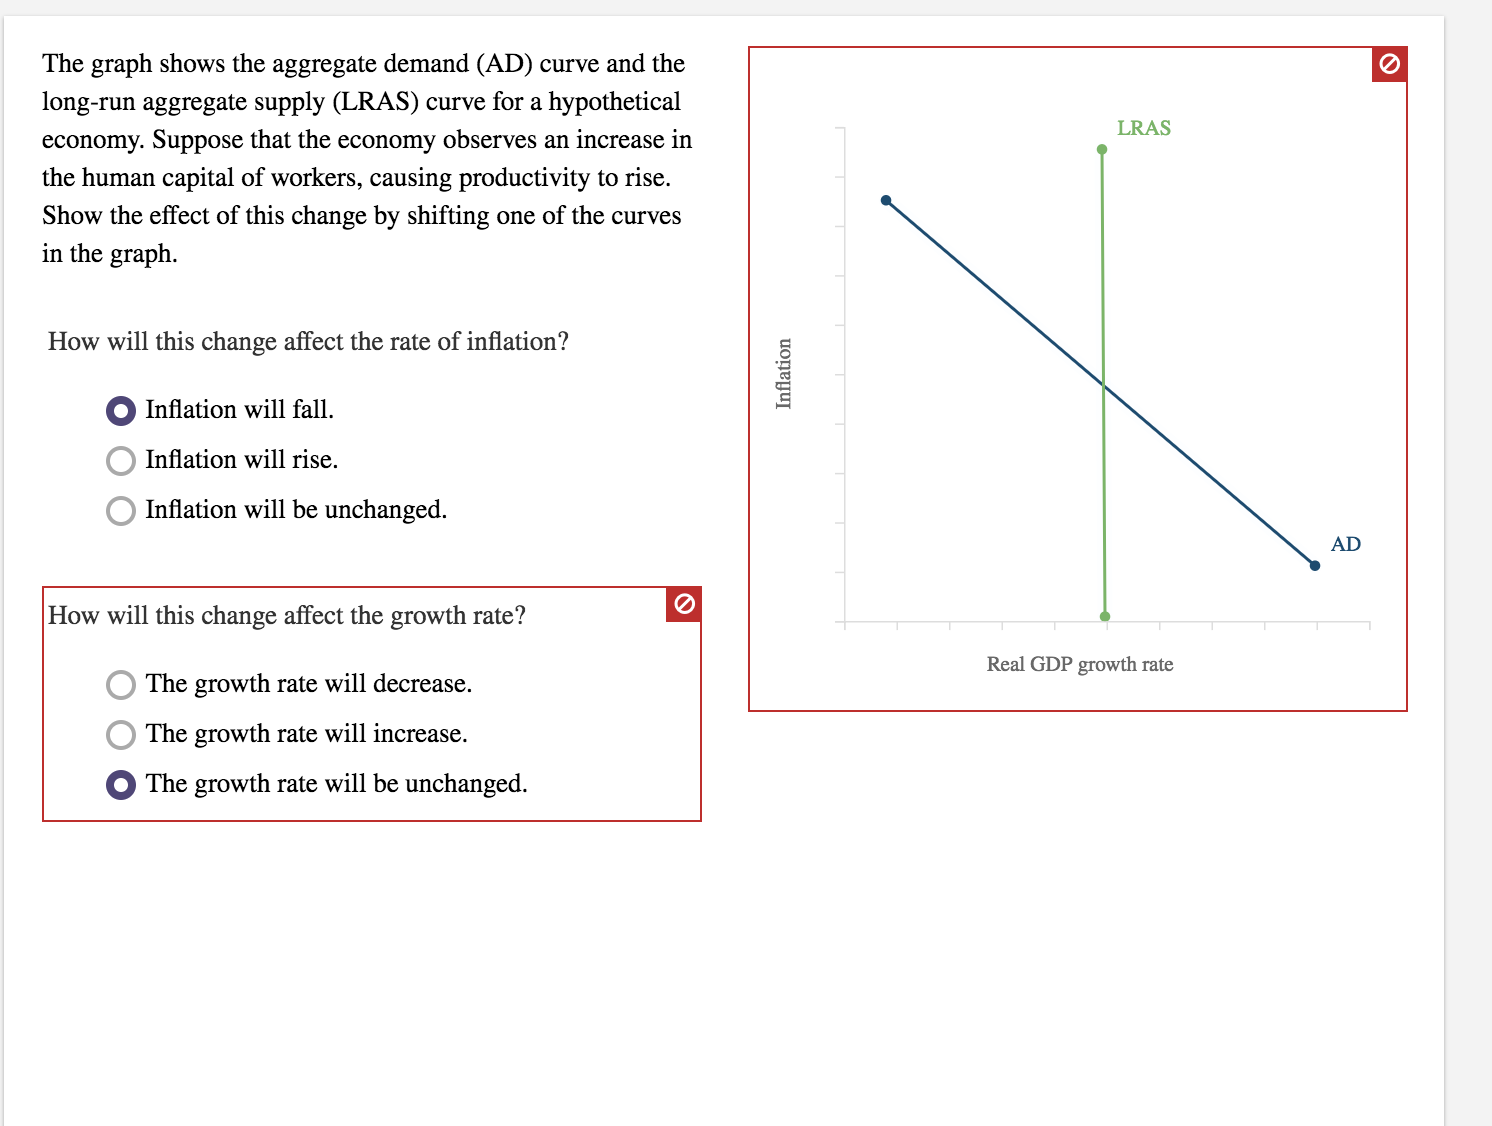 The graph shows the aggregate demand (AD) curve and the long-run aggregate supply (LRAS) curve for a hypothetical economy. Suppose that the economy observes an increase in the human capital of workers, causing productivity to rise. Show the effect of this change by shifting one of the curves in the graph. LRAS How will this change affect the rate of inflation? Inflation will fall Inflation will rise, Inflation will be unchanged. AD How will this change affect the growth rate? Real GDP growth rate The growth rate will decrease. The growth rate will increase. The growth rate will be unchanged.